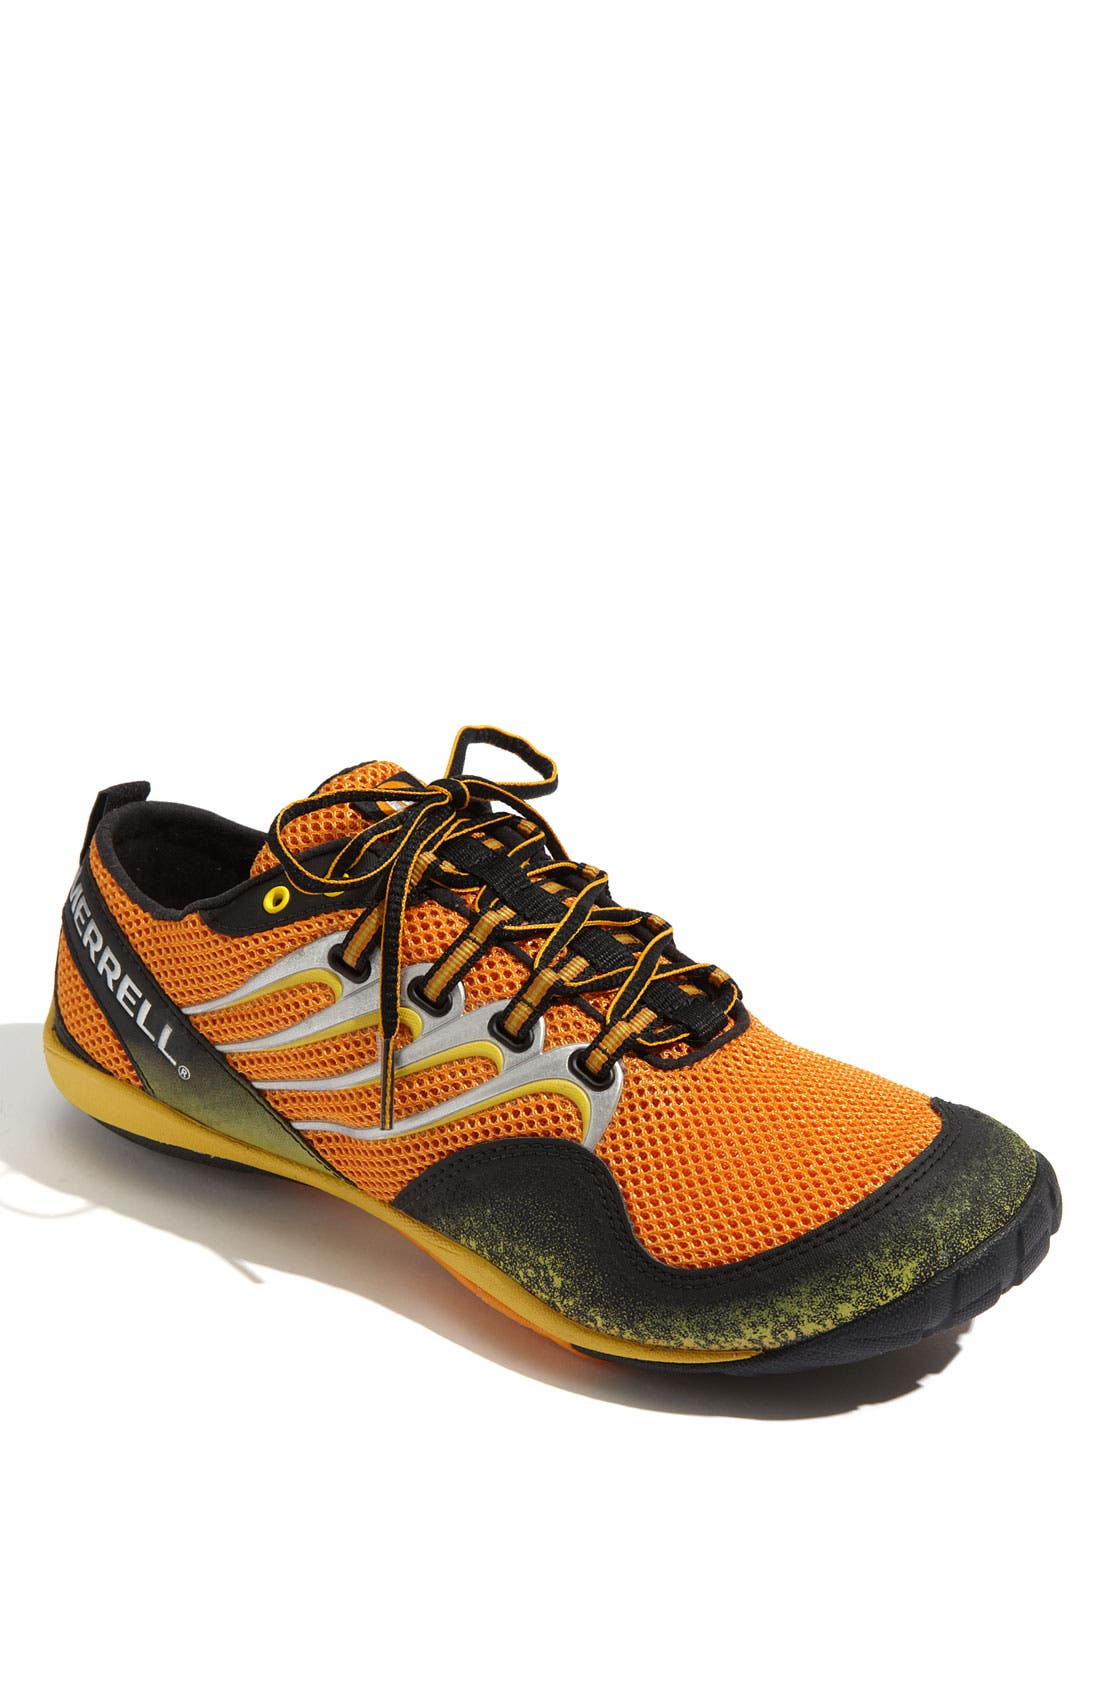 Main Image - Merrell 'Trail Glove' Running Shoe (Men)